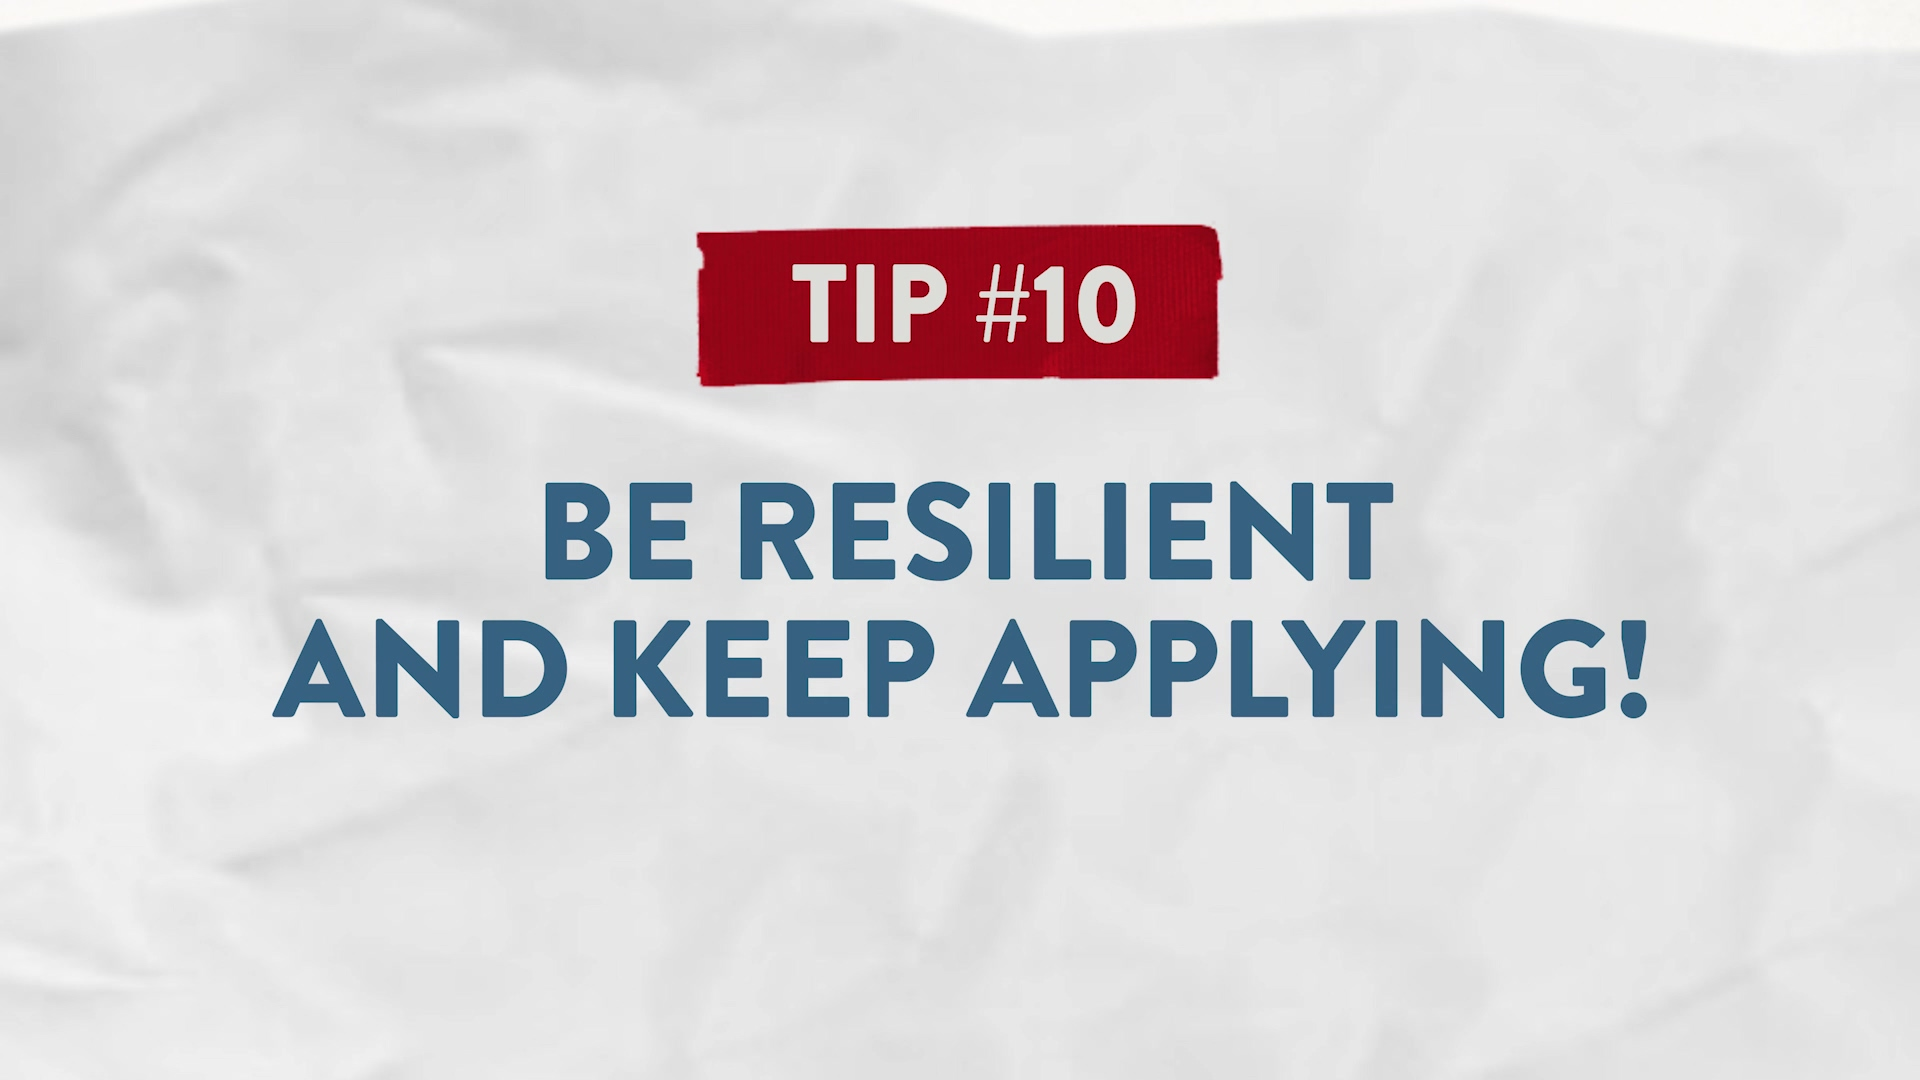 Tip #10 Be Resilient and Keep Applying